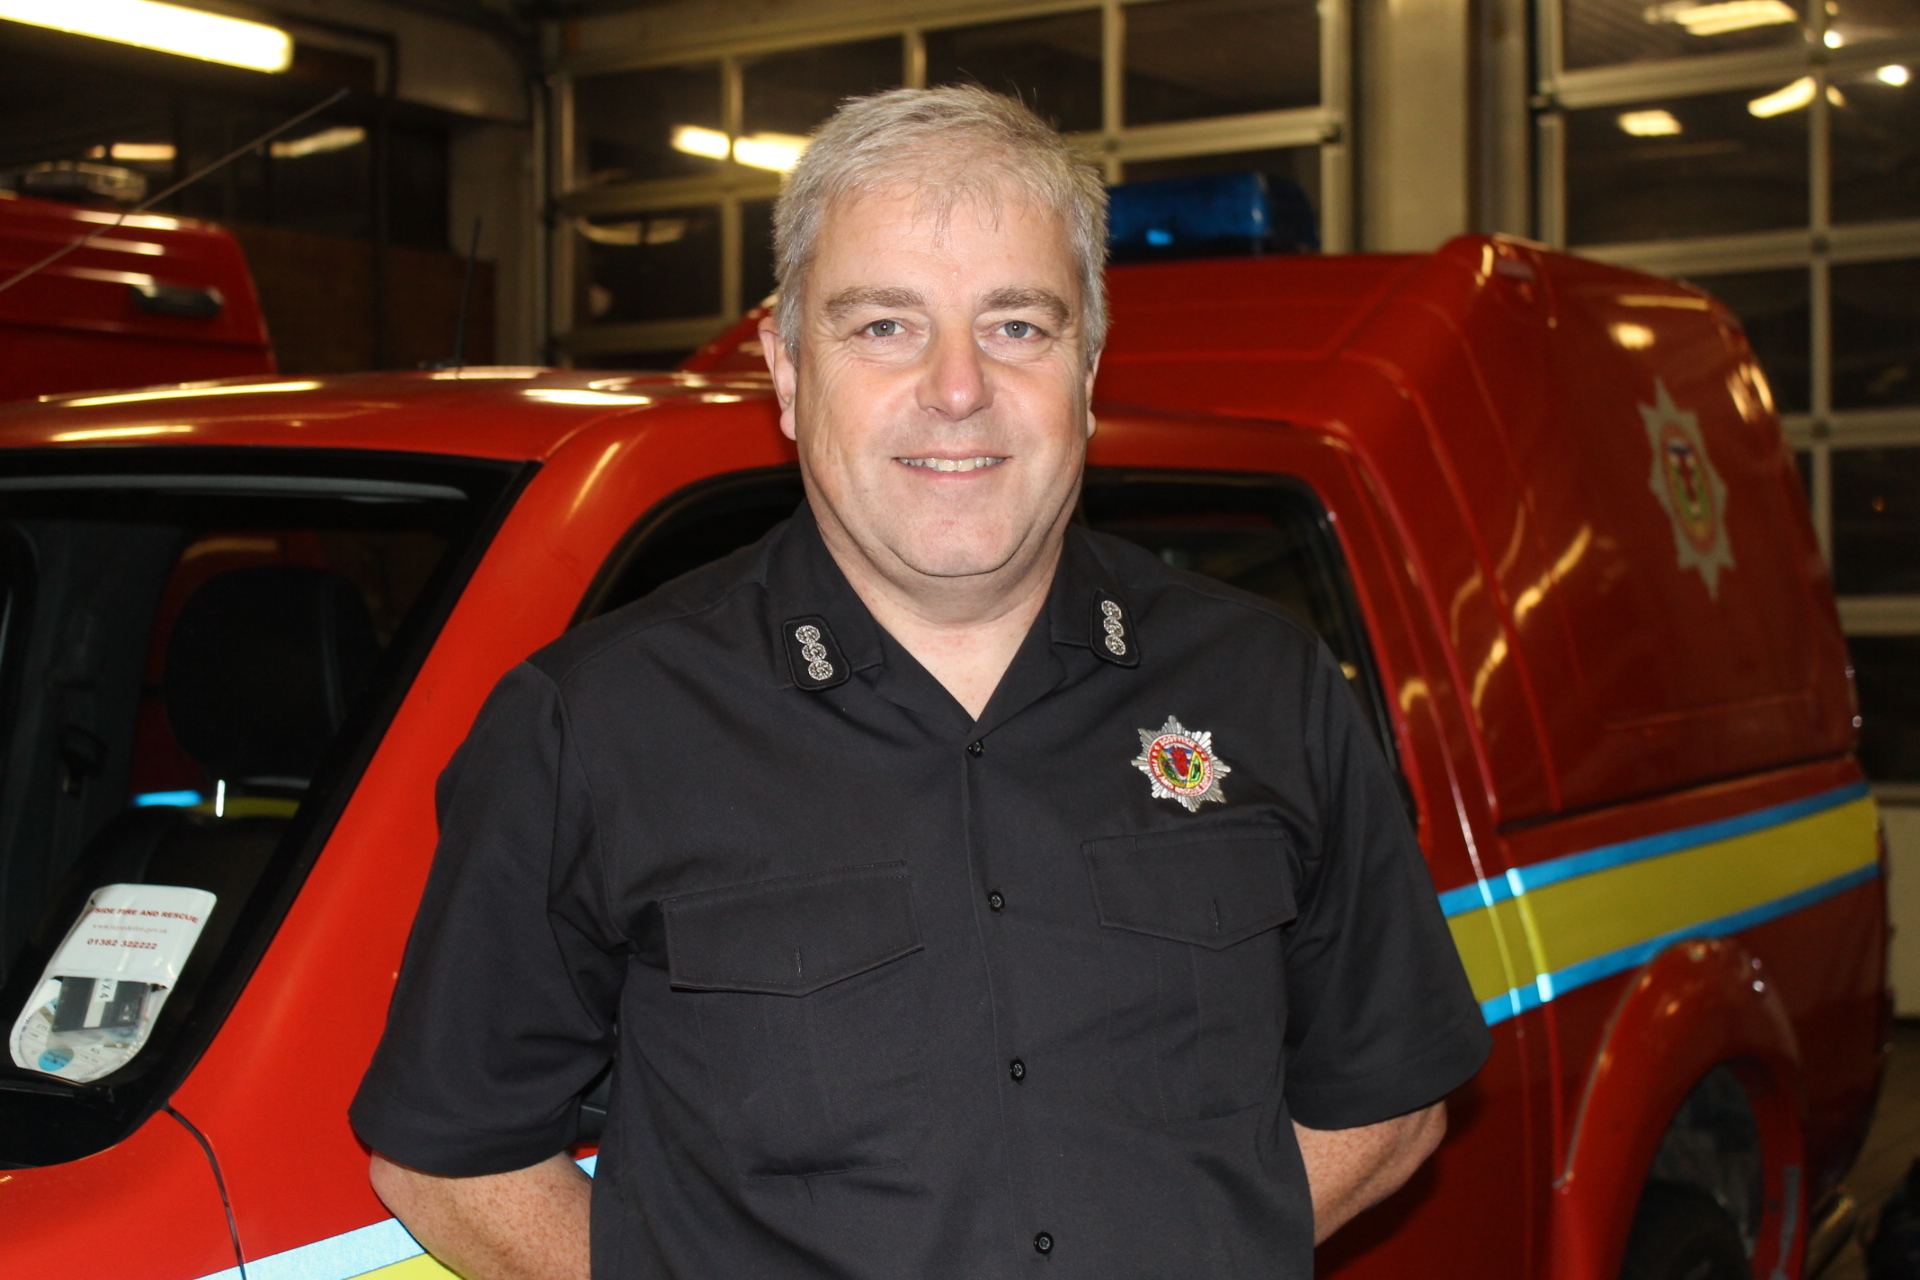 Mr Thomson has warned of the dangers faced by fire fighters when attending suspicious blazes.